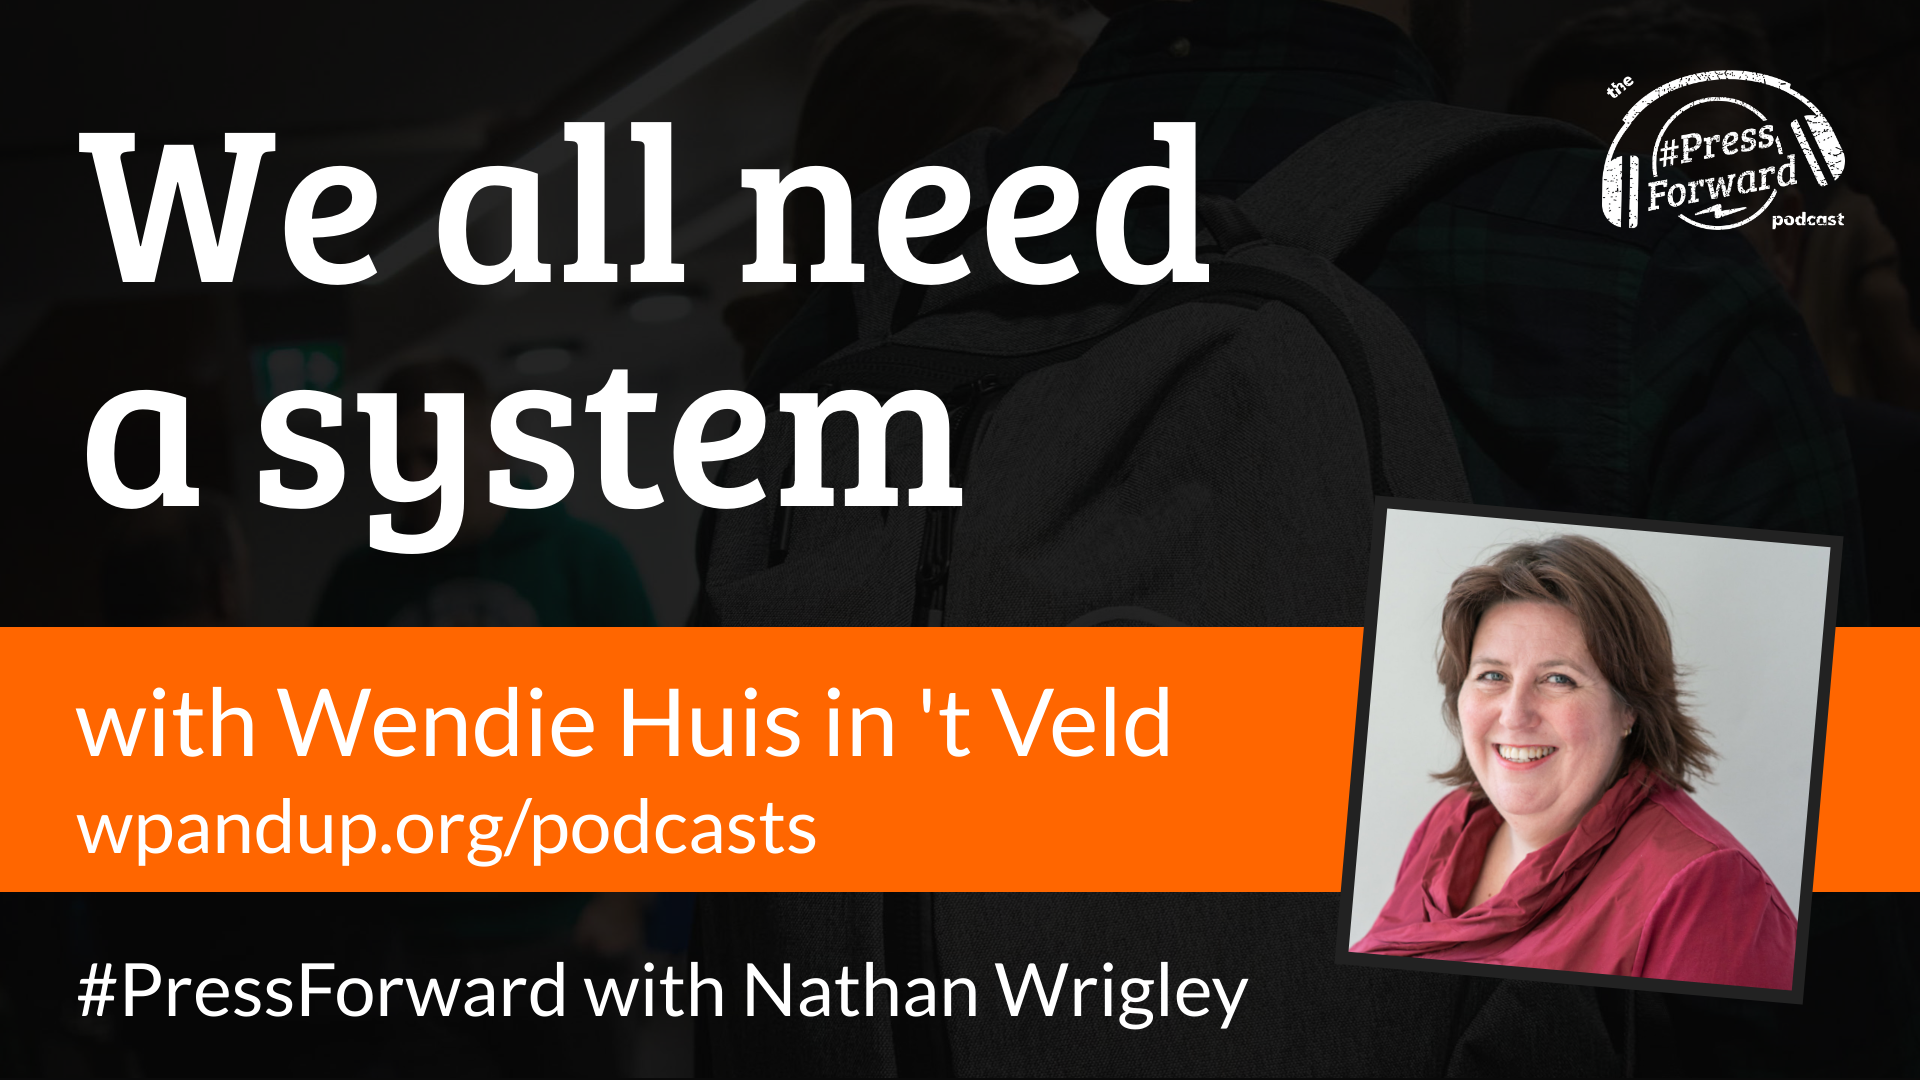 We all need a system - #045